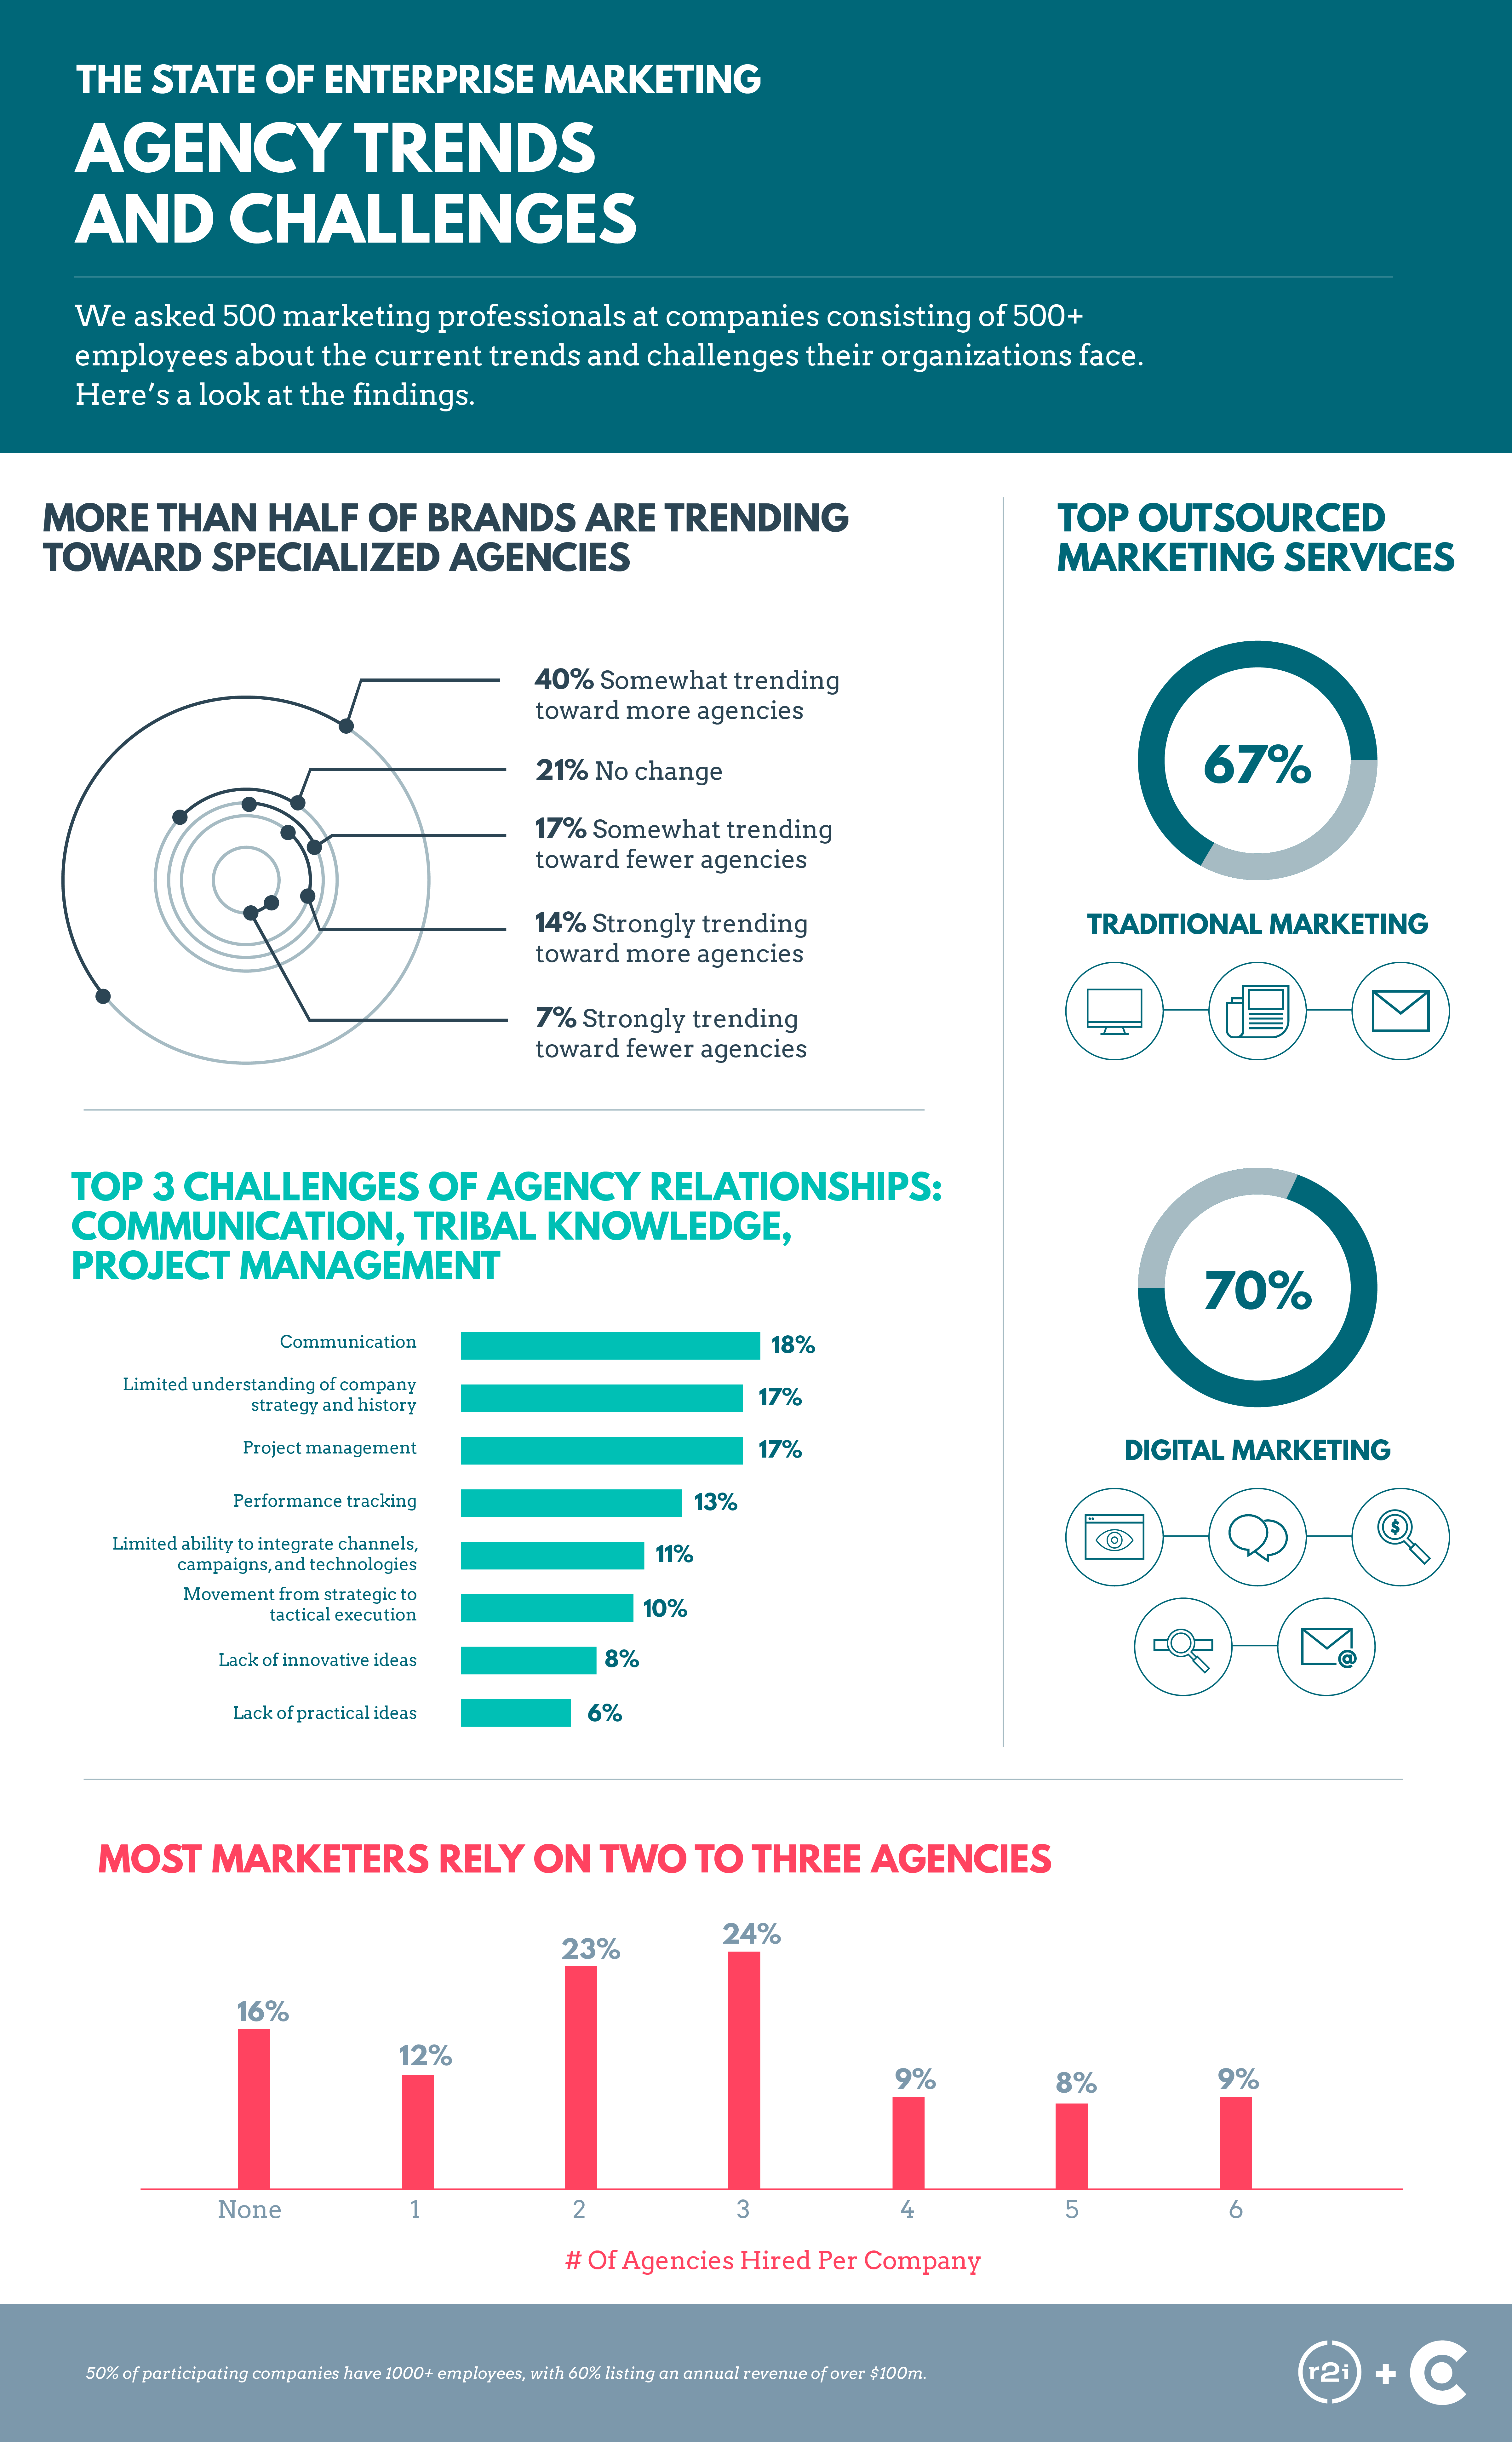 Enterprise-Marketing-Infographic-Agency-Trends